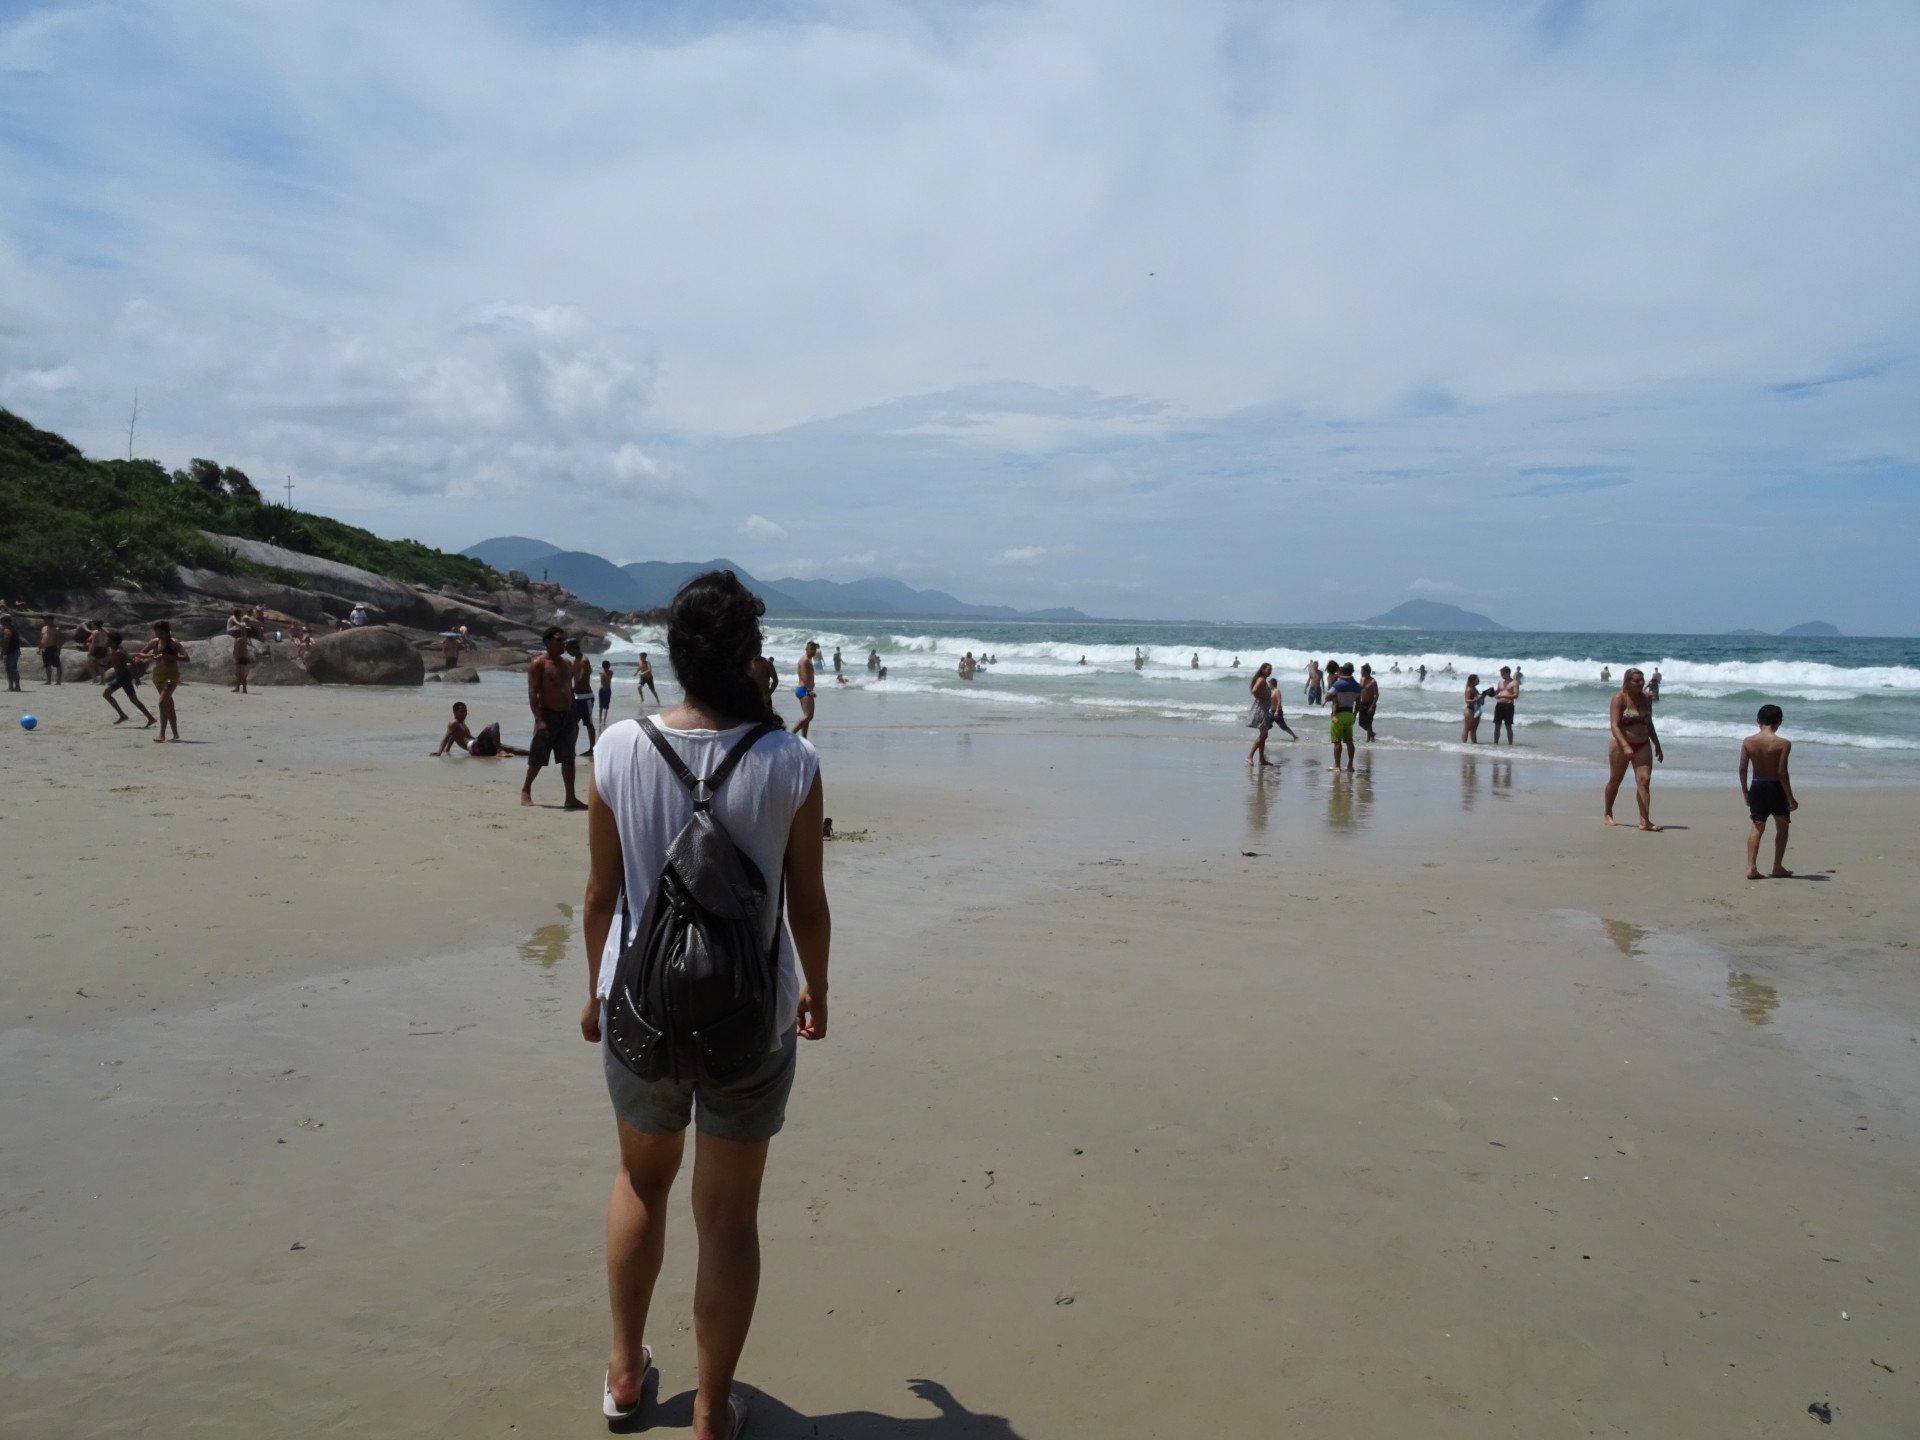 The beach at Barra da Lagoa.